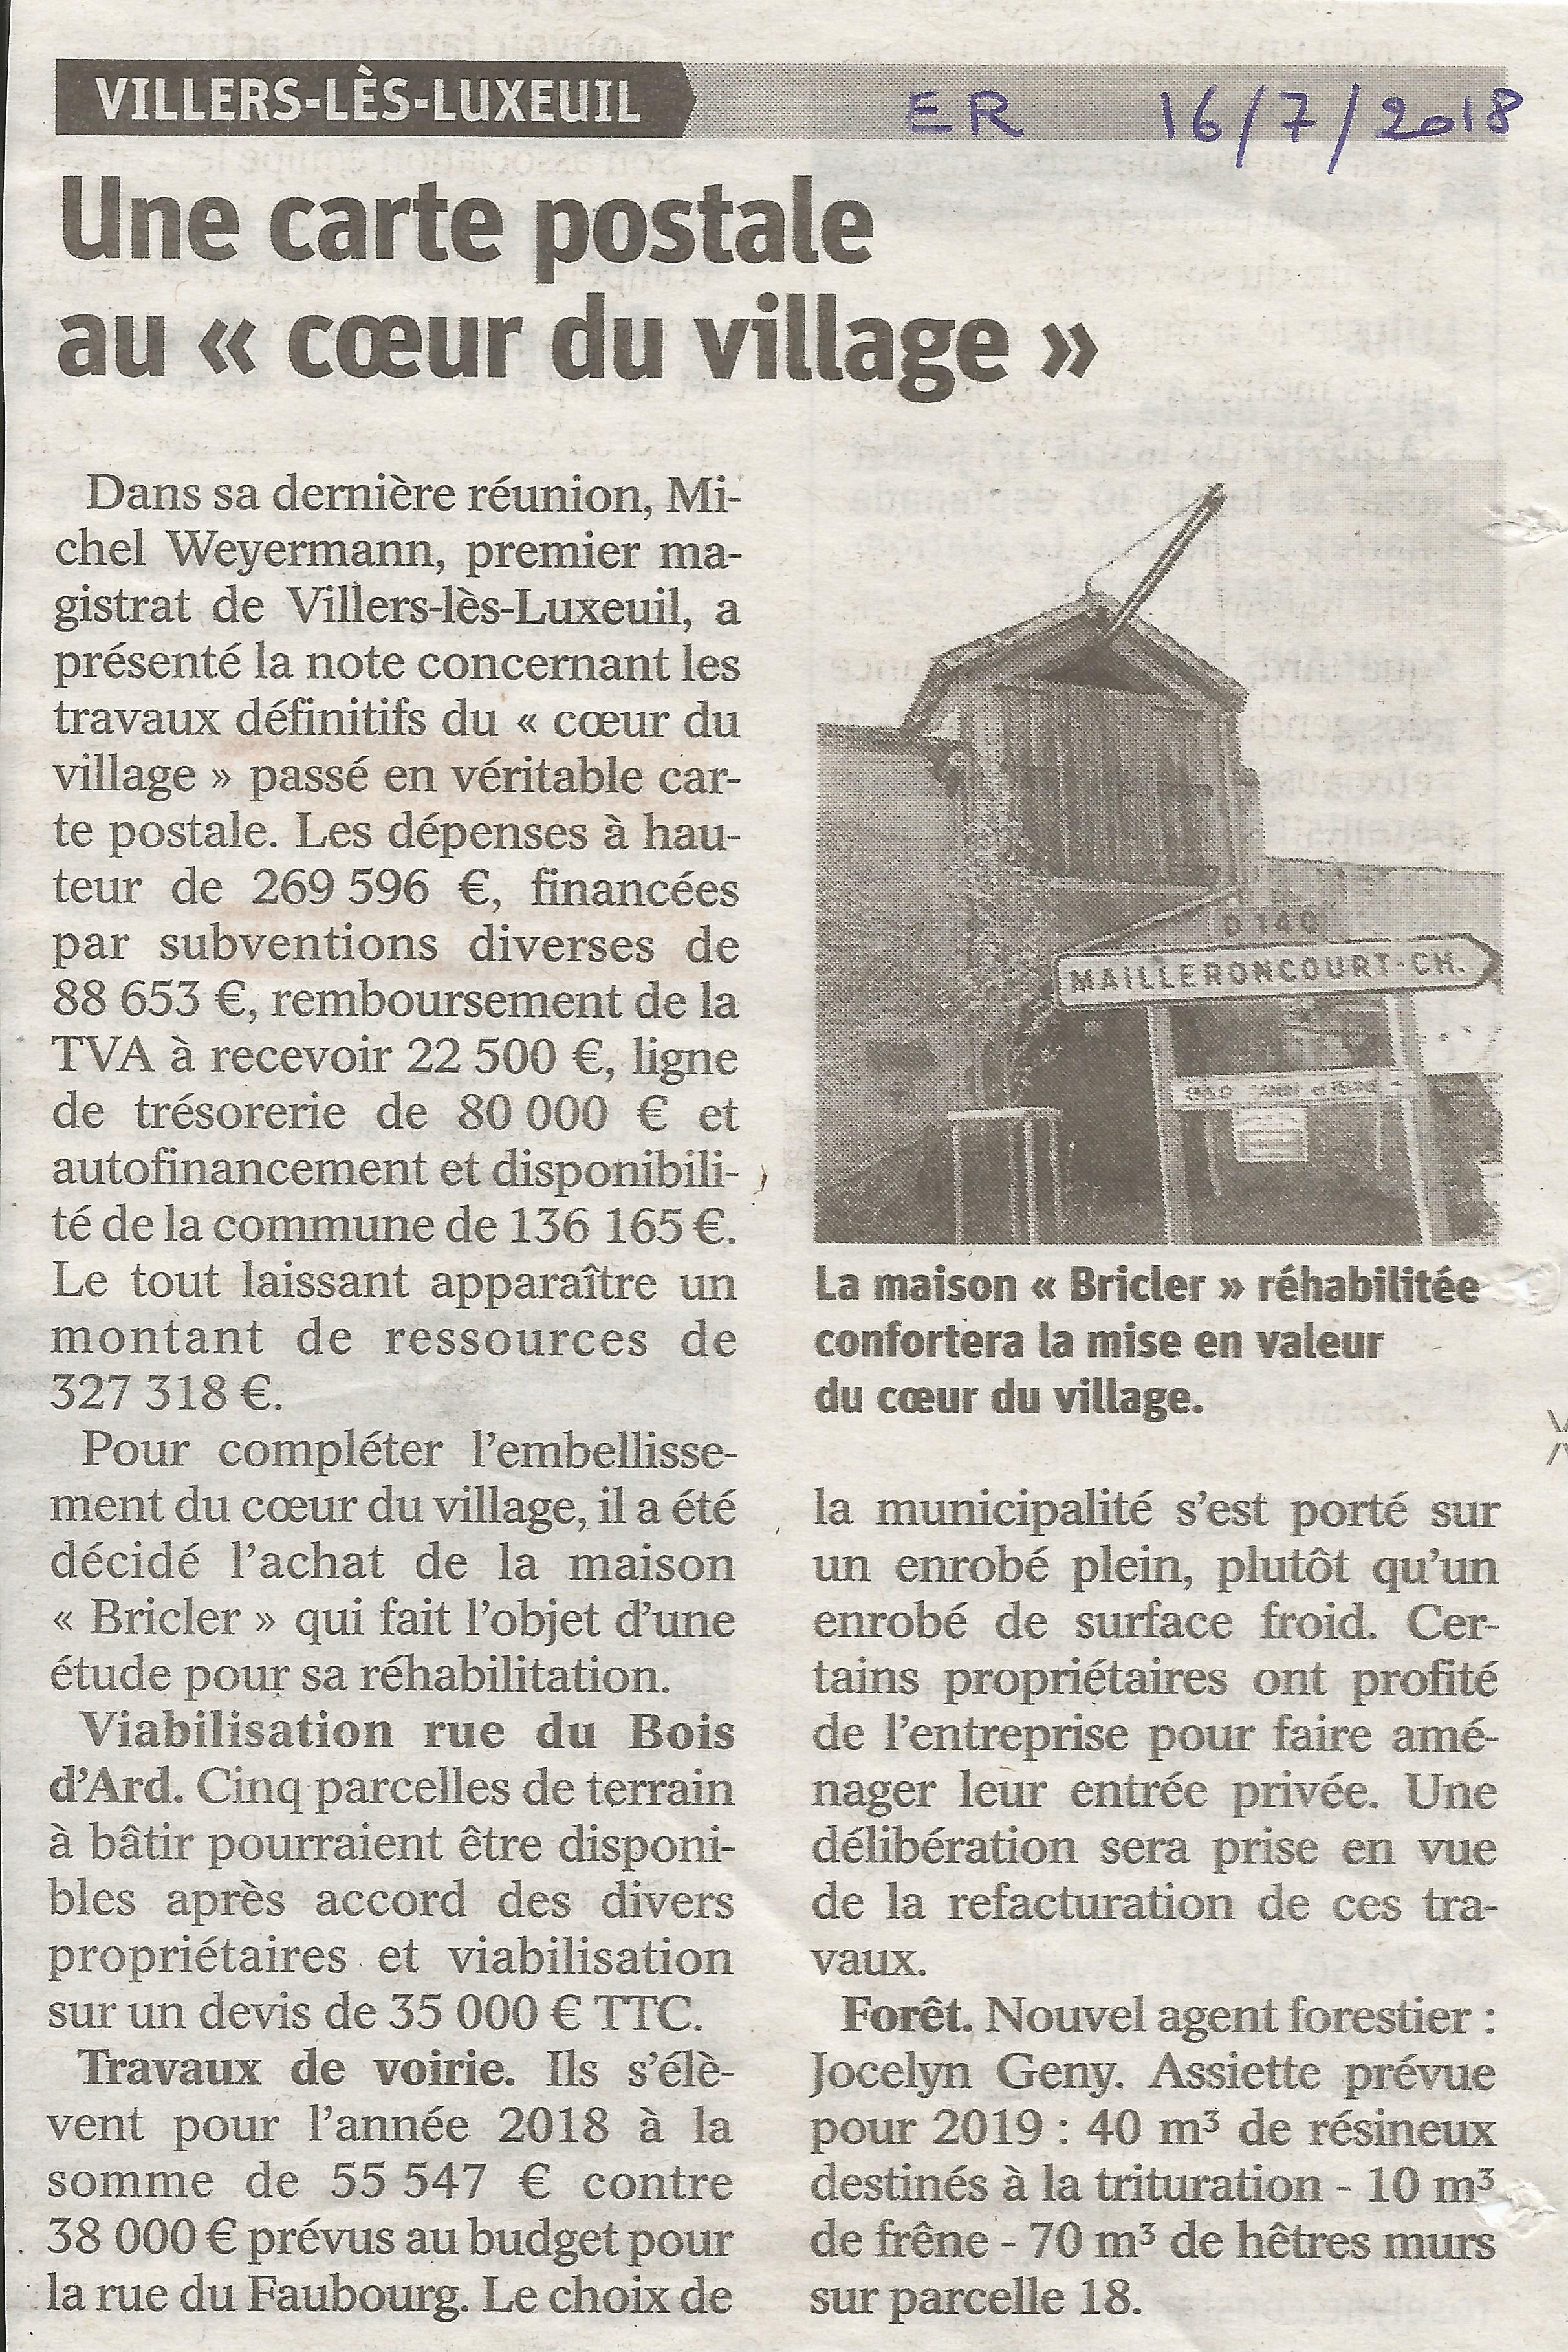 https://www.villers-les-luxeuil.com/projets/villers/files/images/2018_Mairie/Presse/2018_07_16.jpg